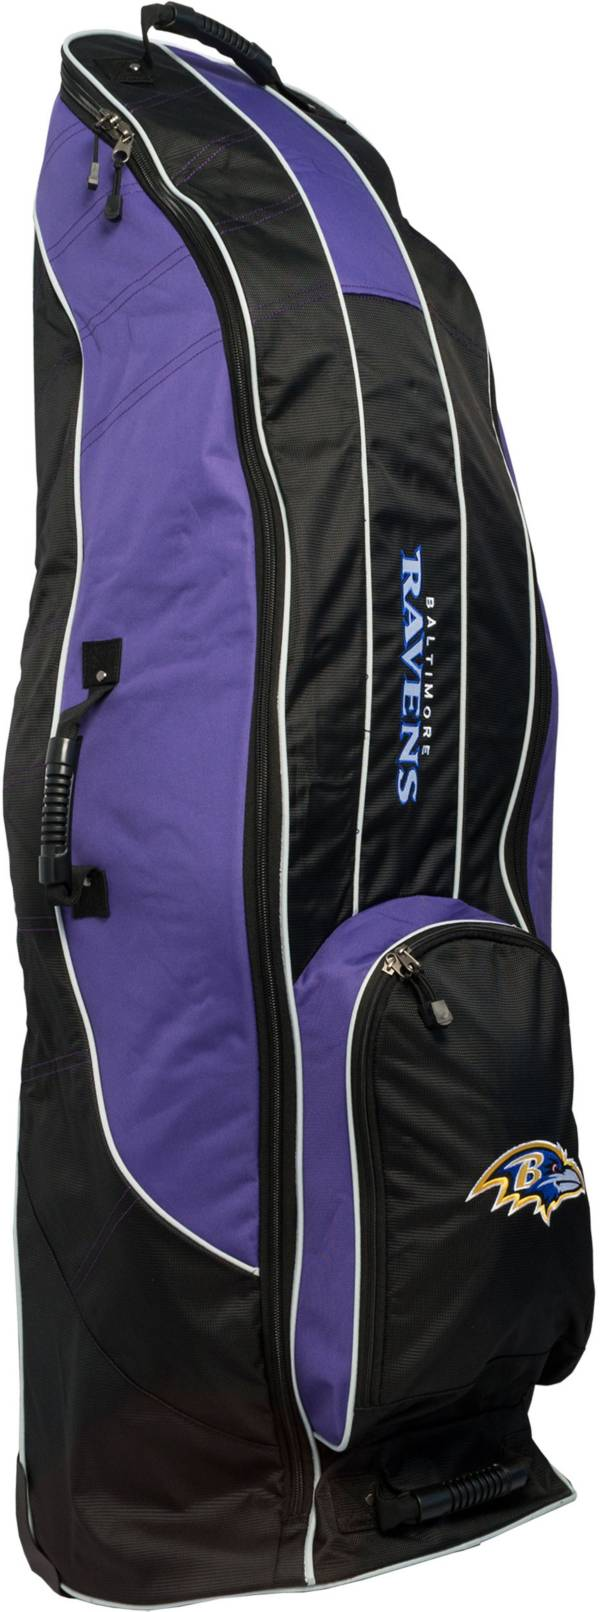 Team Golf Baltimore Ravens Travel Cover product image